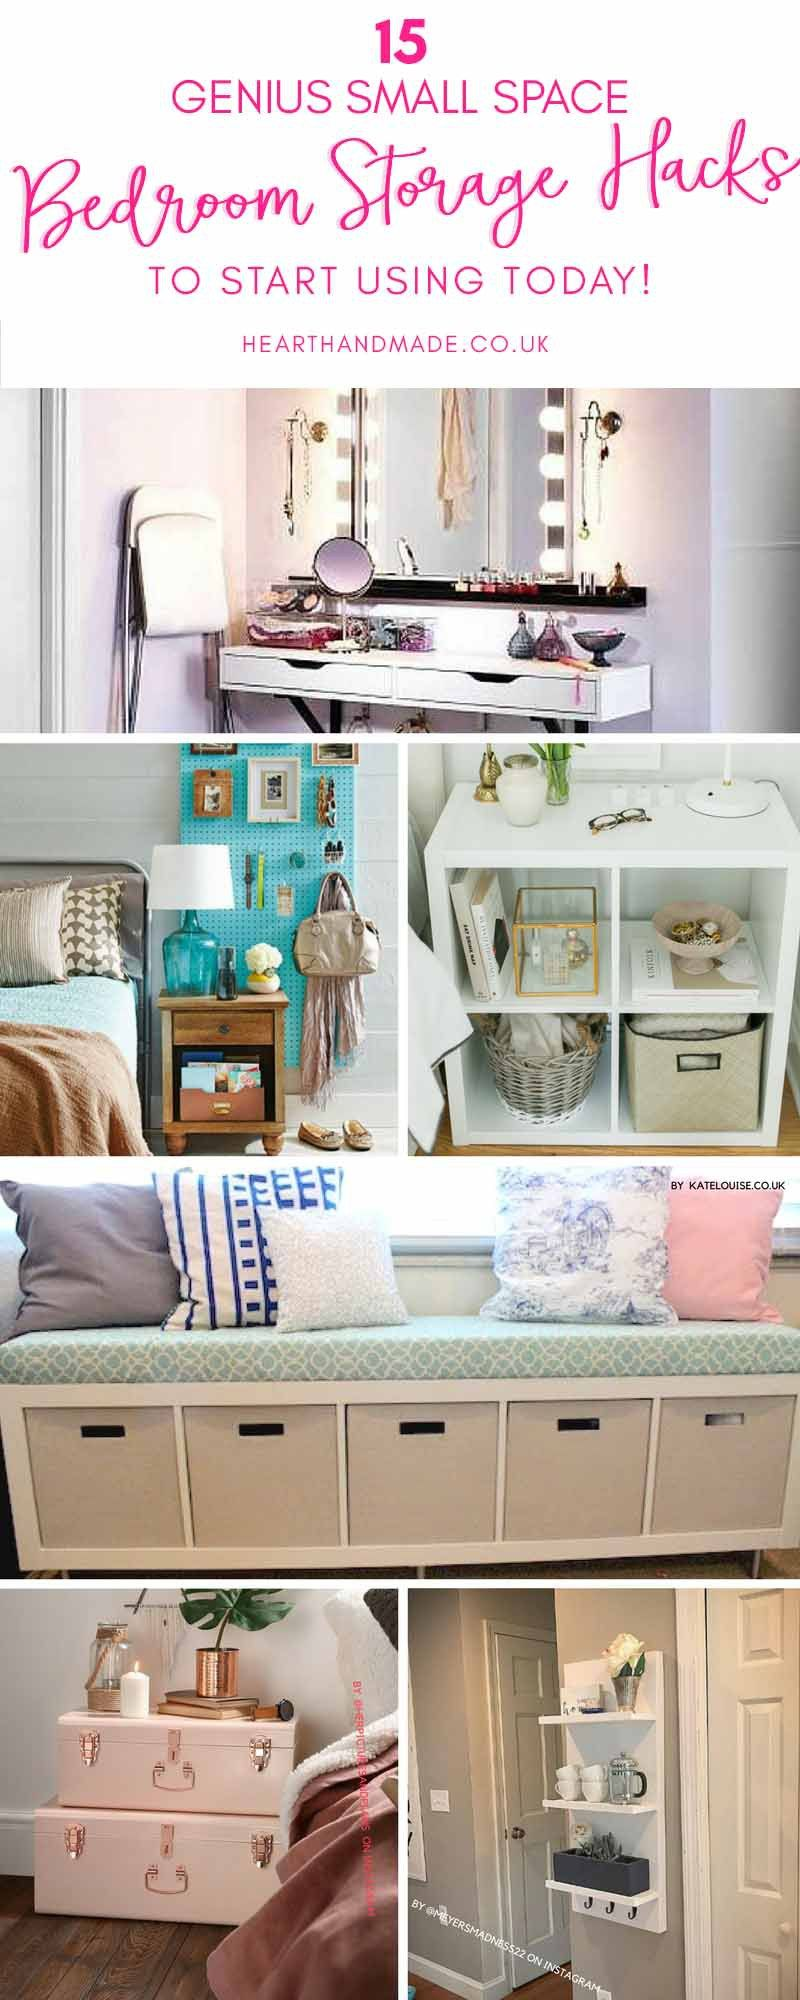 brilliant bedroom storage hacks you need to use for the home